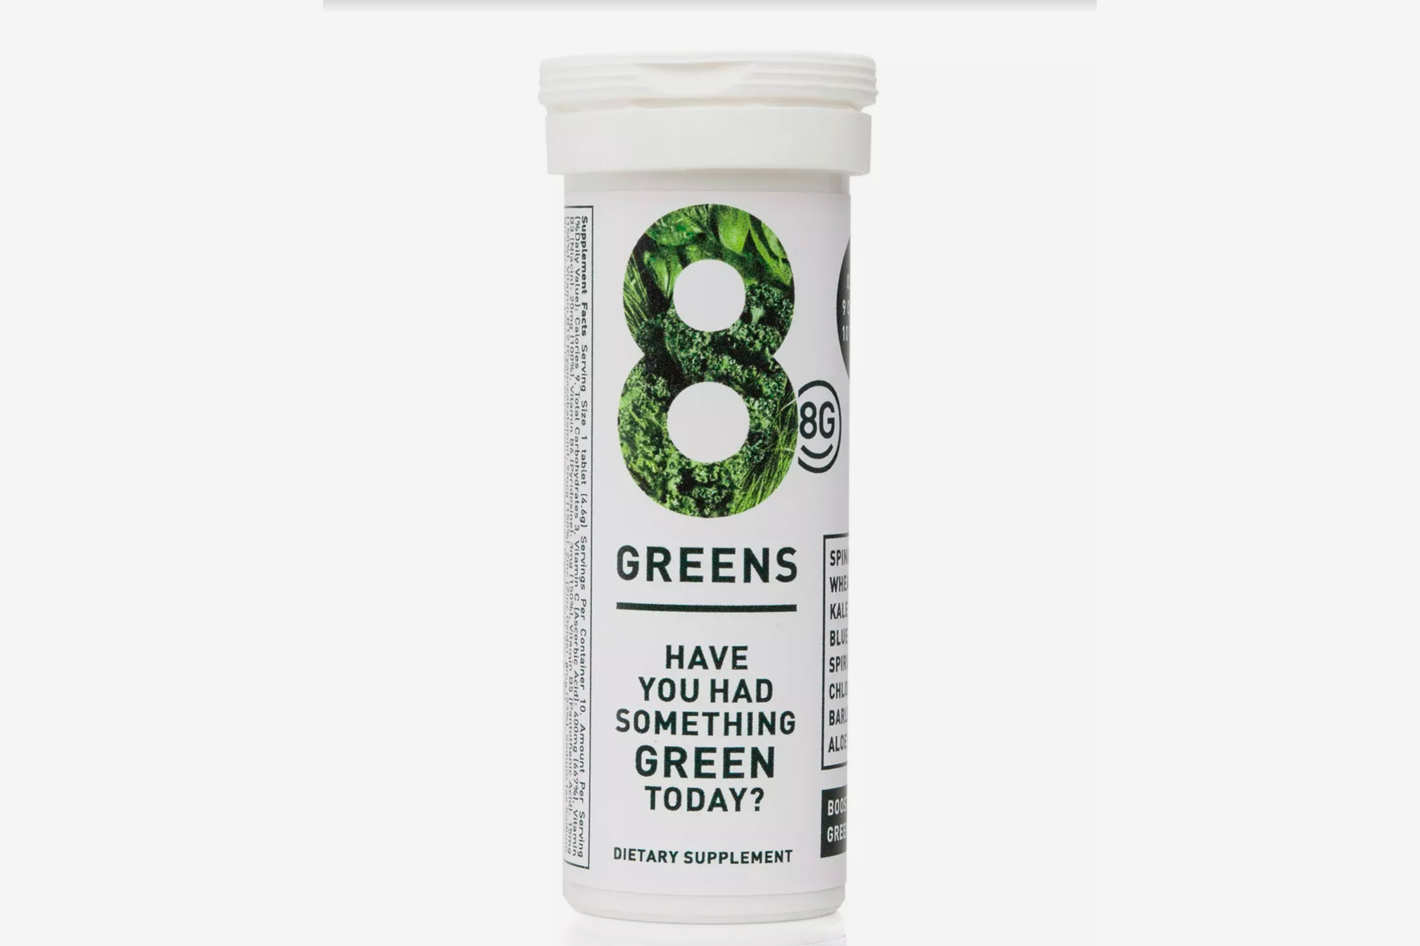 8 Greens Essential Greens Booster, 10 tablets